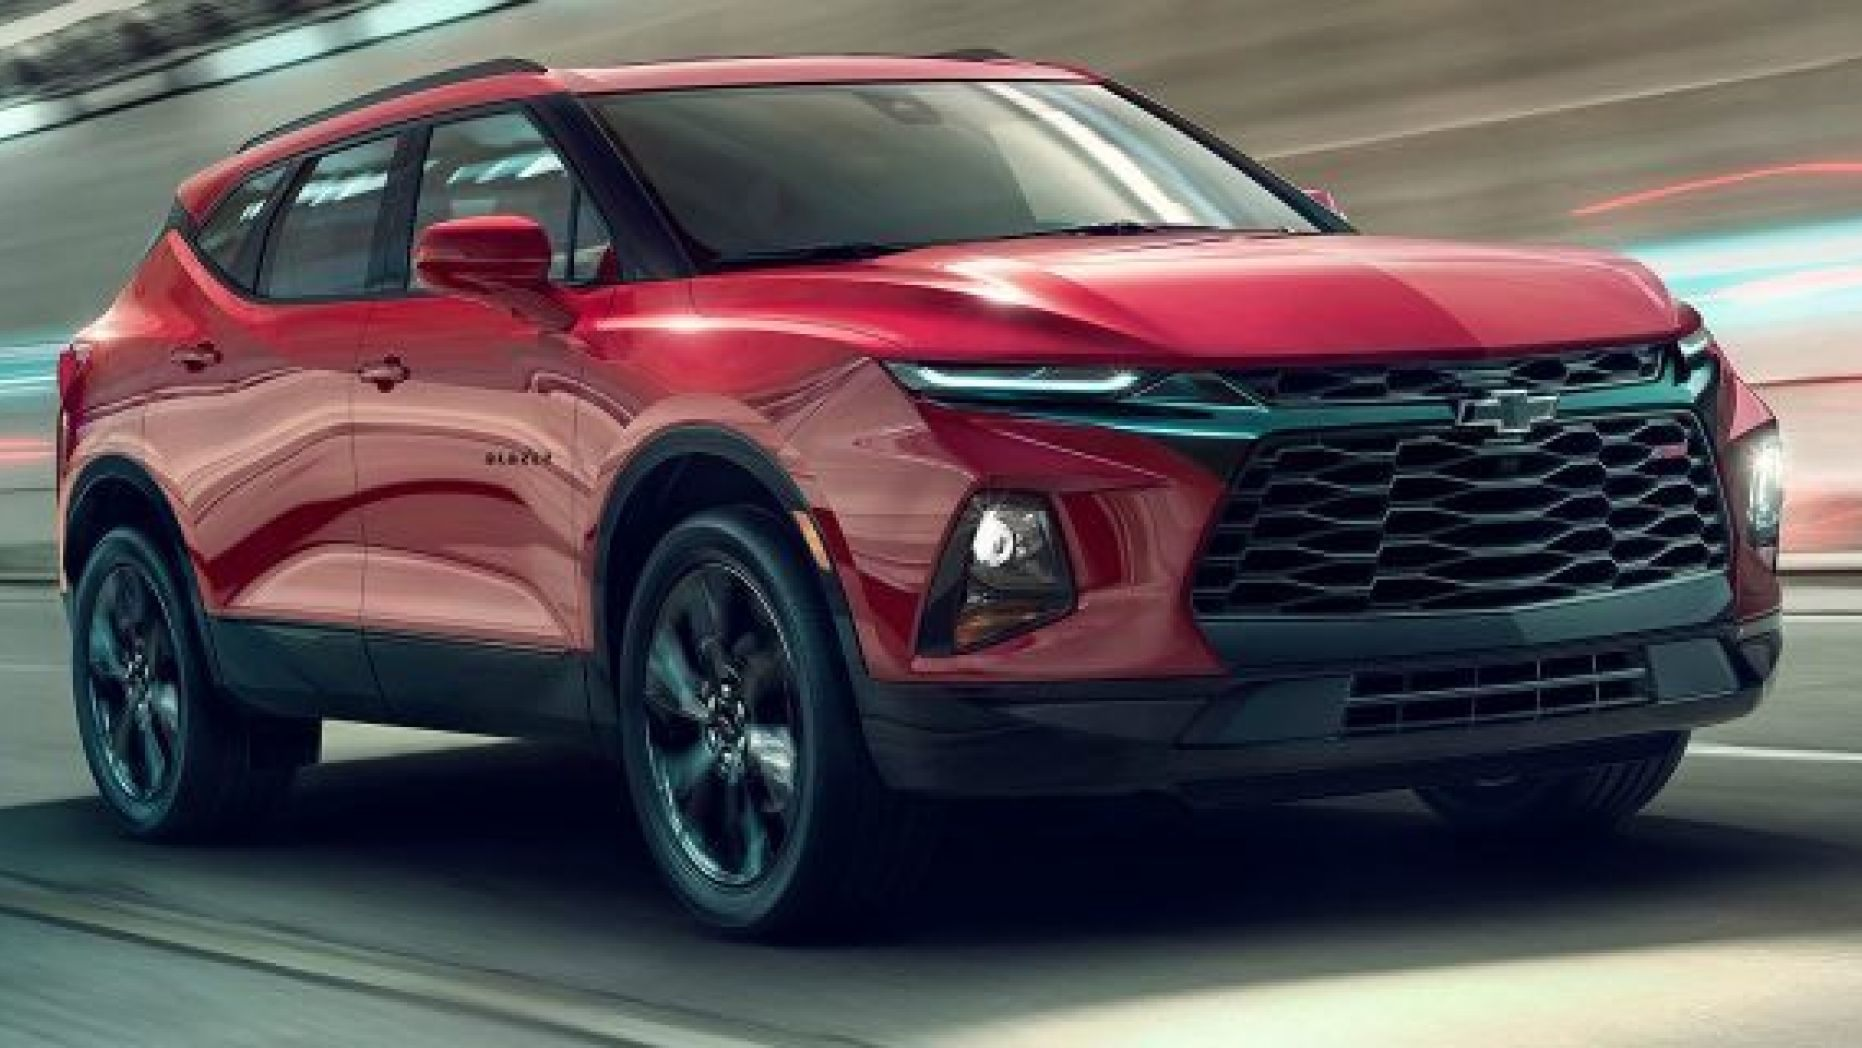 67 The Best 2020 Chevy Blazer Redesign and Concept